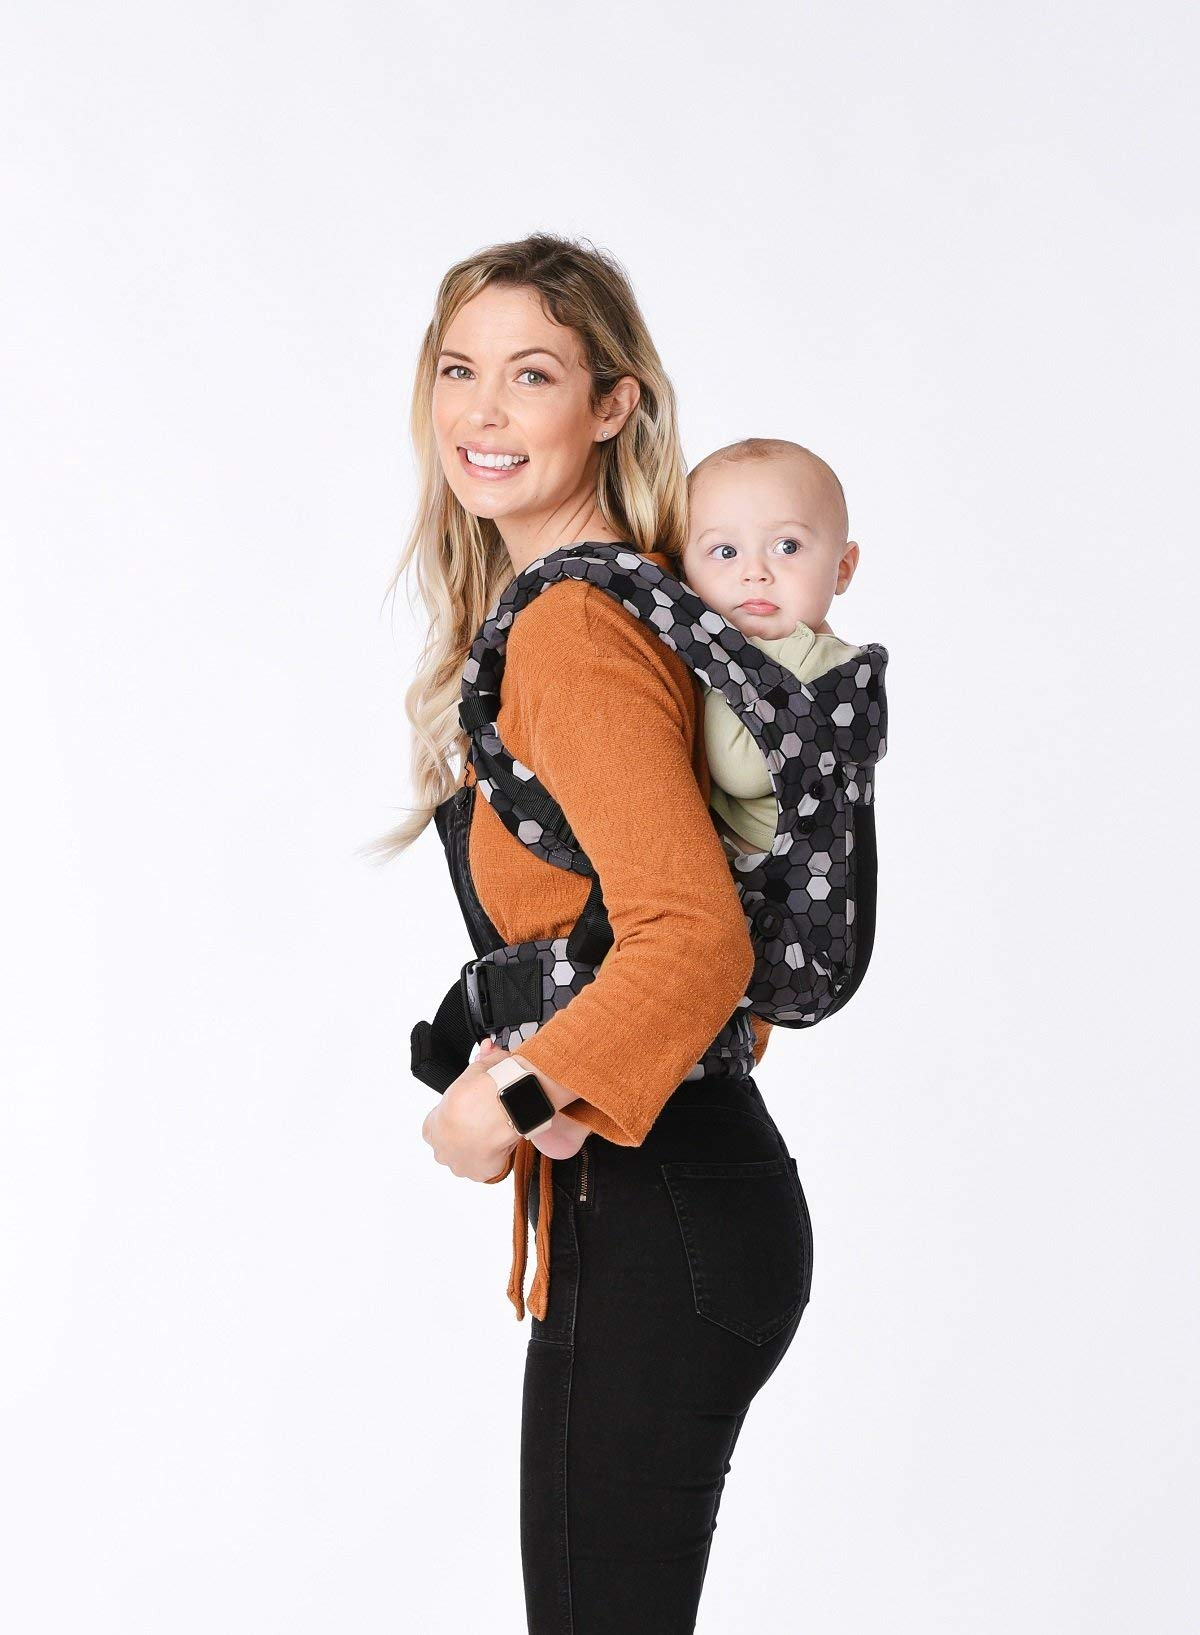 Tula Explore Baby Carrier Coast Buzz Tula Multiple porting positions, including front out. Baby carrier with an innovative main panel with an easy to adjust design in three width settings so that it can be used from 3.2 to 20.4 kg without the need for a baby cushion. The explore baby carrier has padded and adjustable neck support that can be used in multiple positions to provide head and neck support for newborn or sleeping babies 5